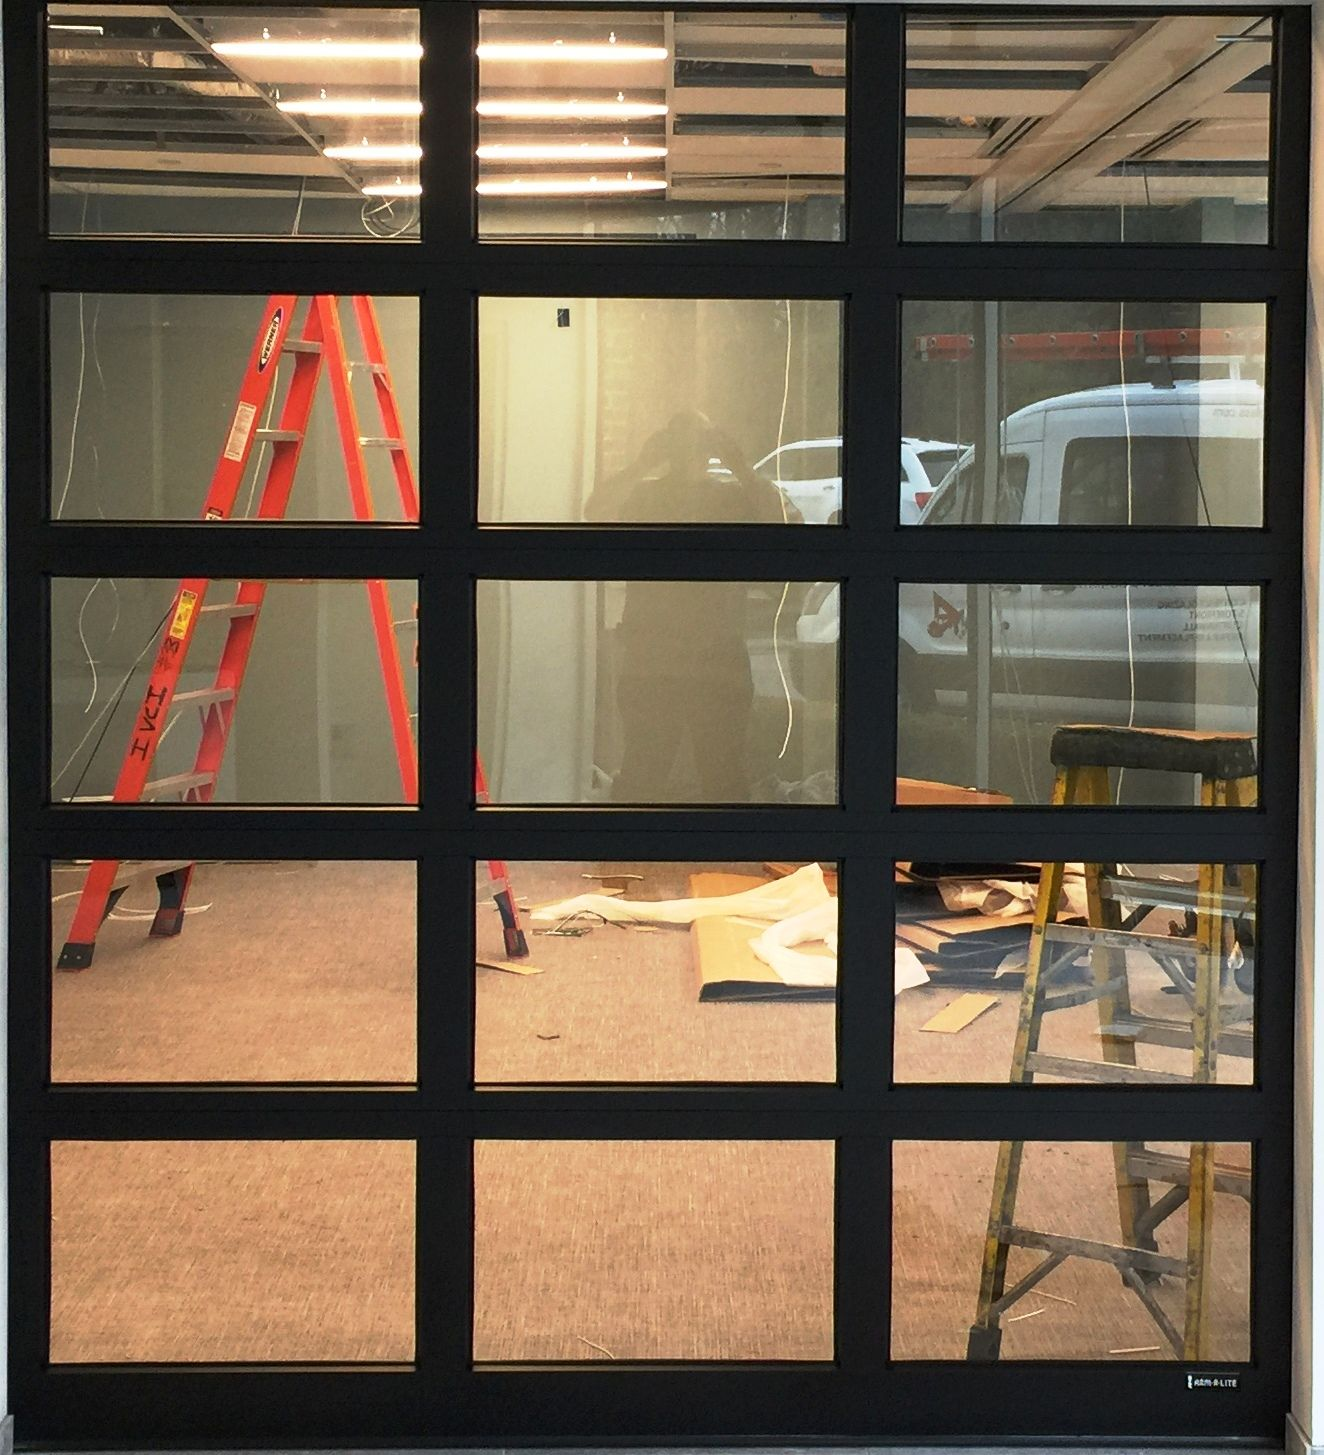 Black Frame Glass Garage Doors From Arm R Lite Come With An Unmatched 20 Year Welded Frame Warranty This Also Include Garage Doors Glass Garage Door New Homes